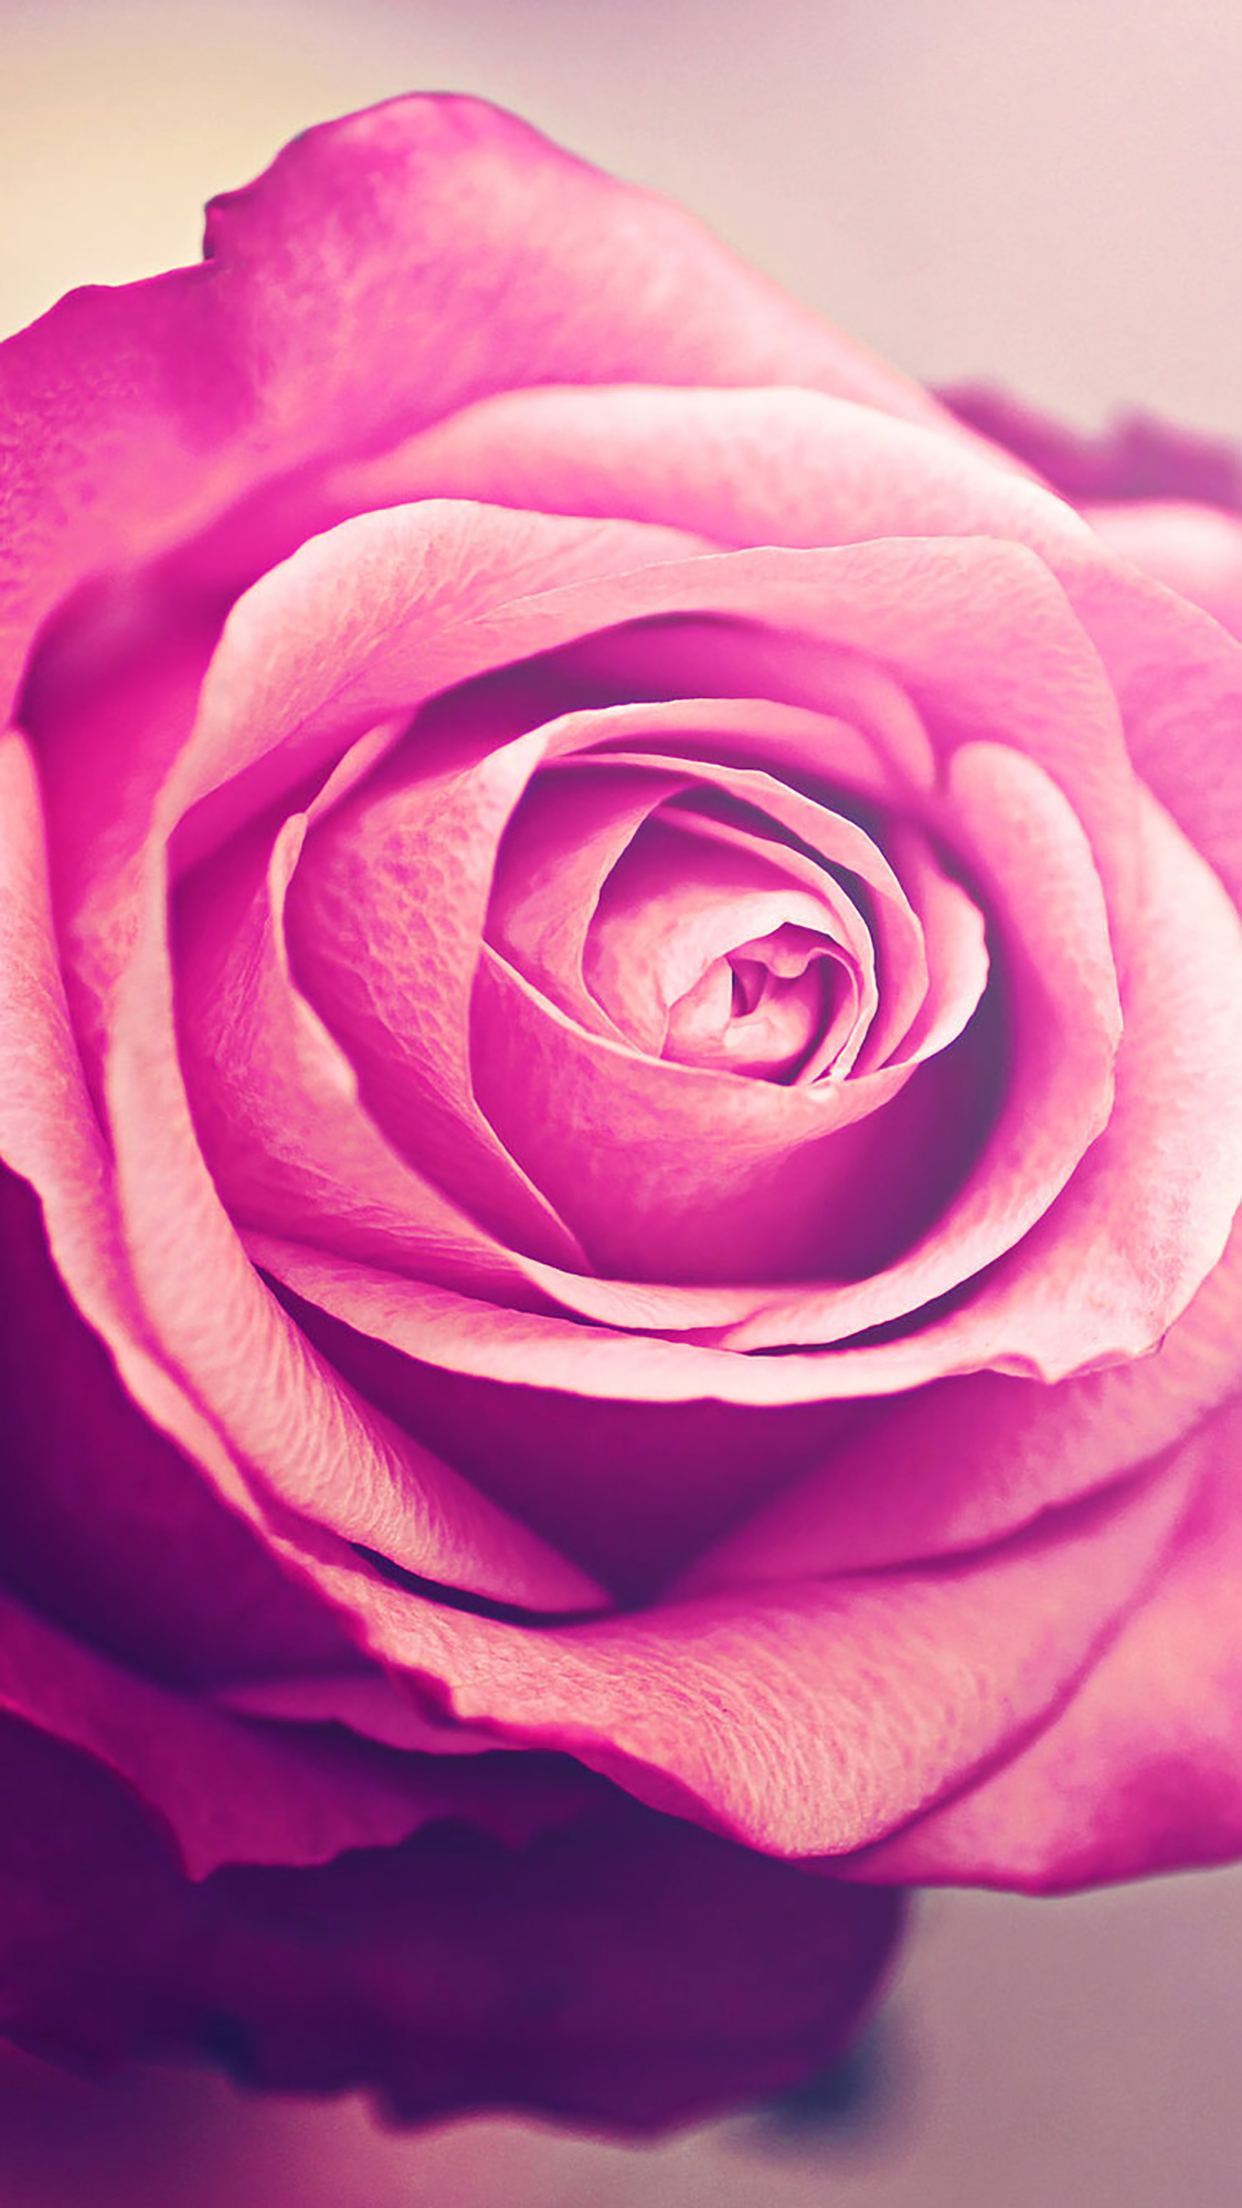 Rose Wallpaper Iphone Pink Rose Wallpaper Iphone Flower Novocom Top